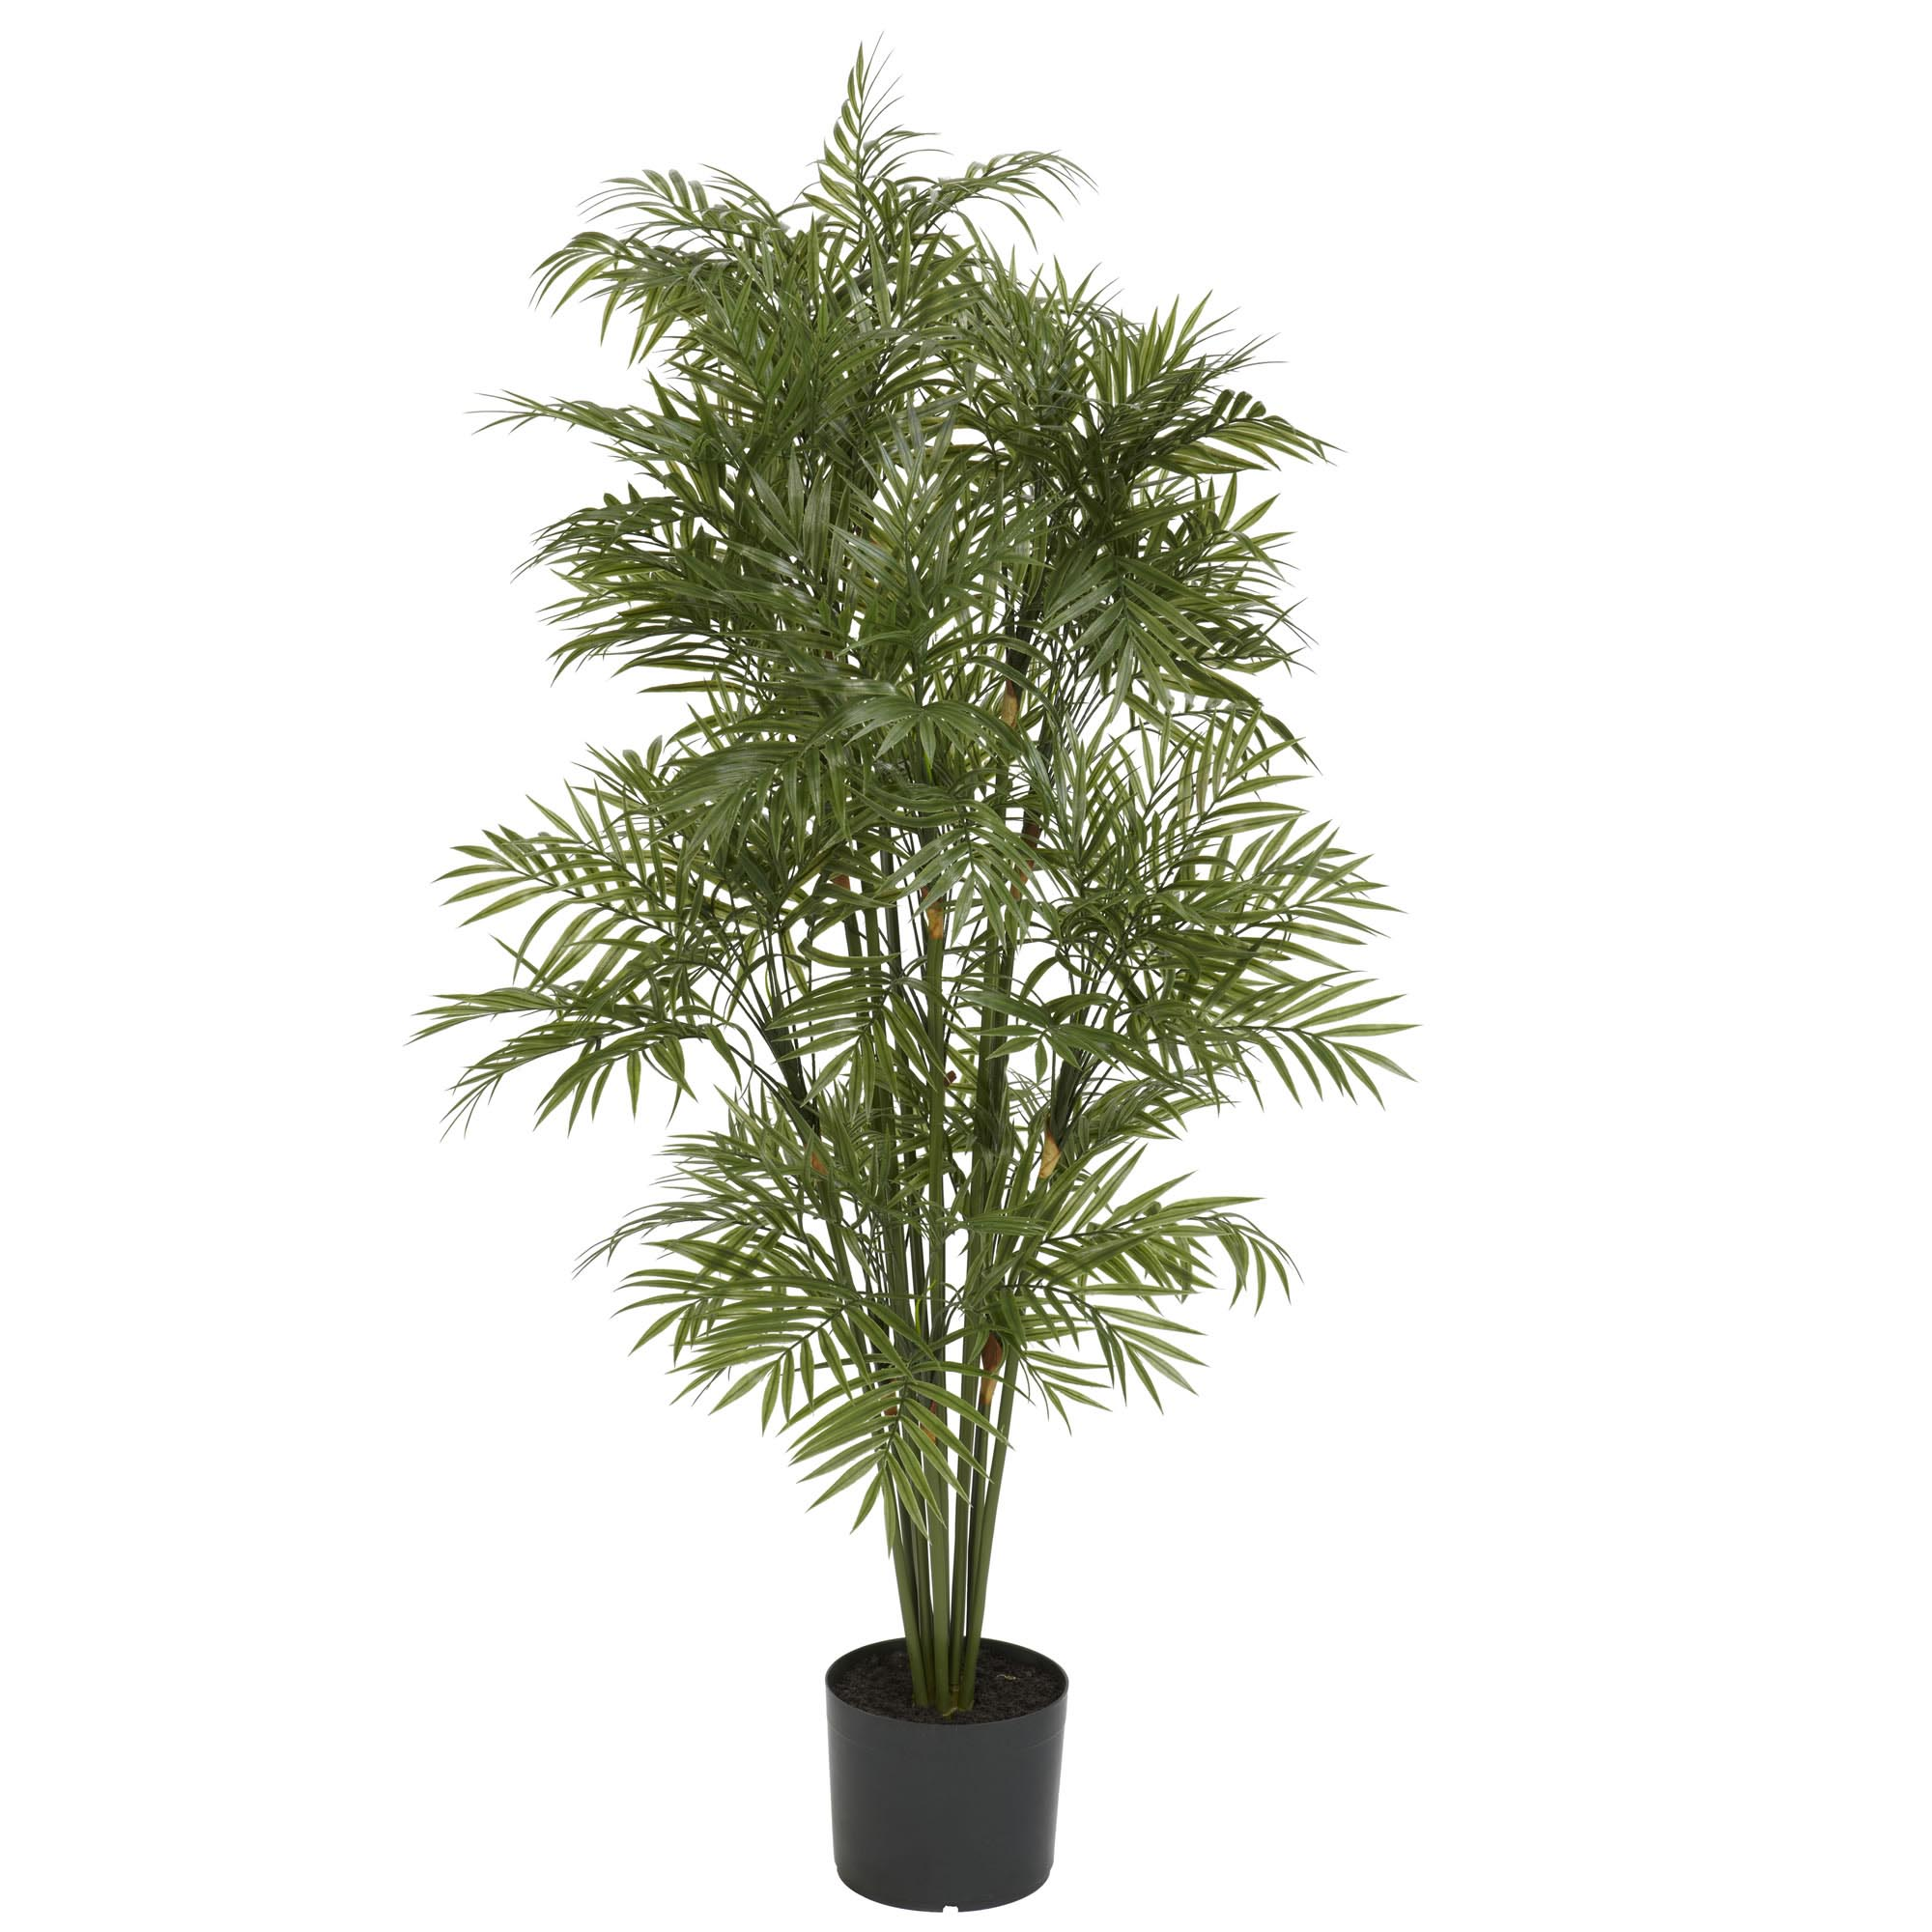 Artificial Christmas Trees 4 Foot